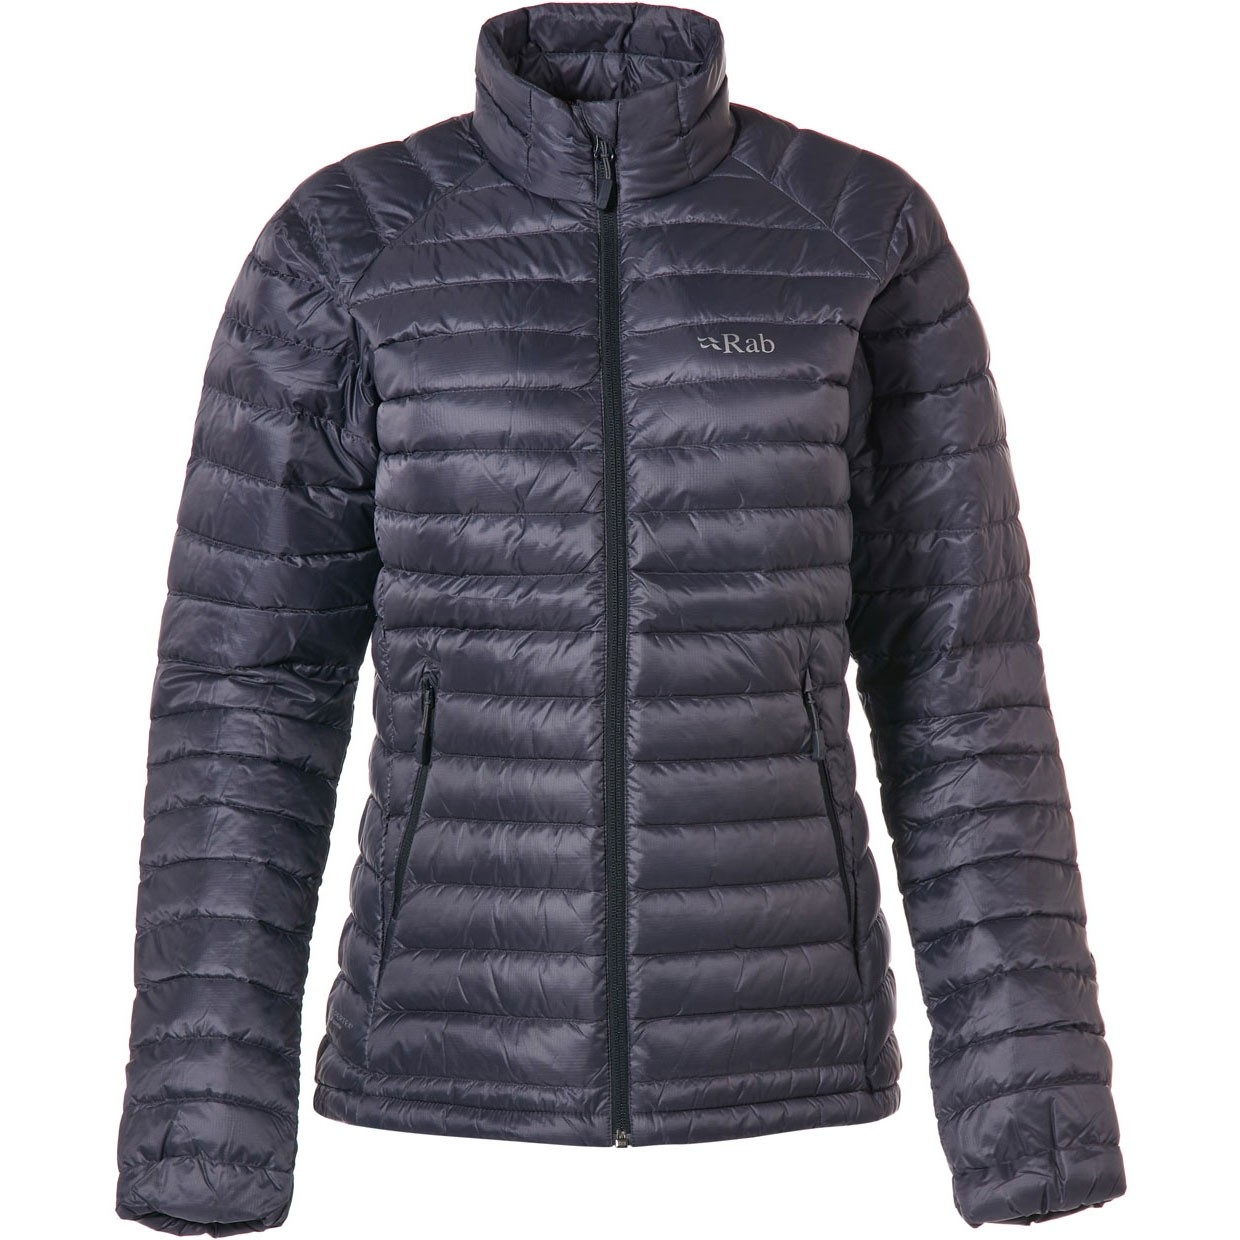 Rab Microlight Jacket - Women's - Steel/Passata